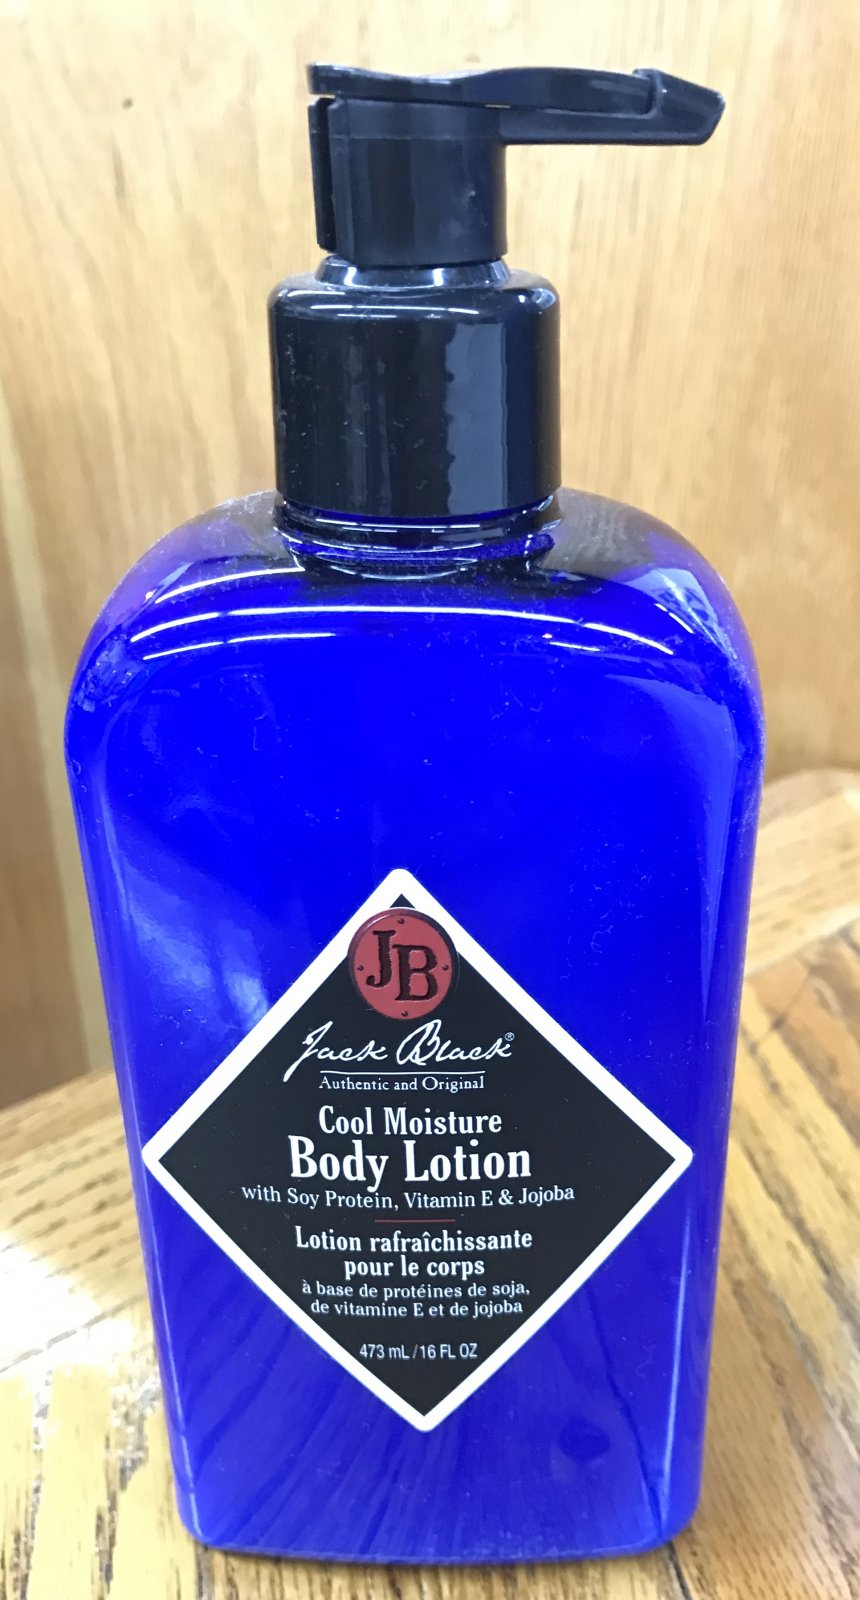 Jack Black Body Lotion 16 oz.